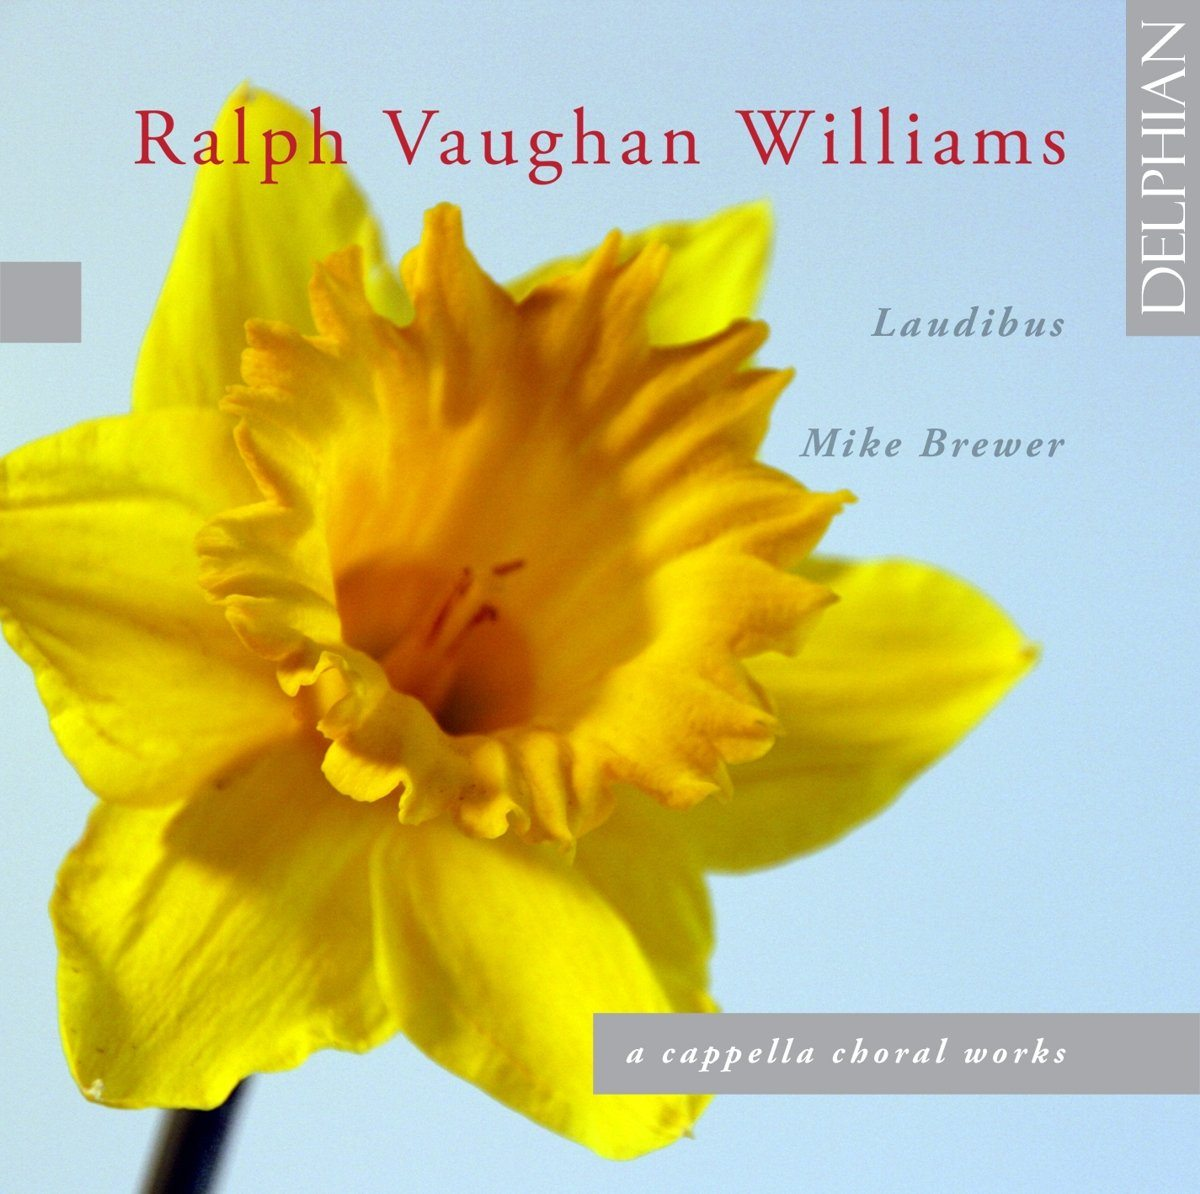 Vaughan Williams: A Cappella Choral Works CD Delphian Records